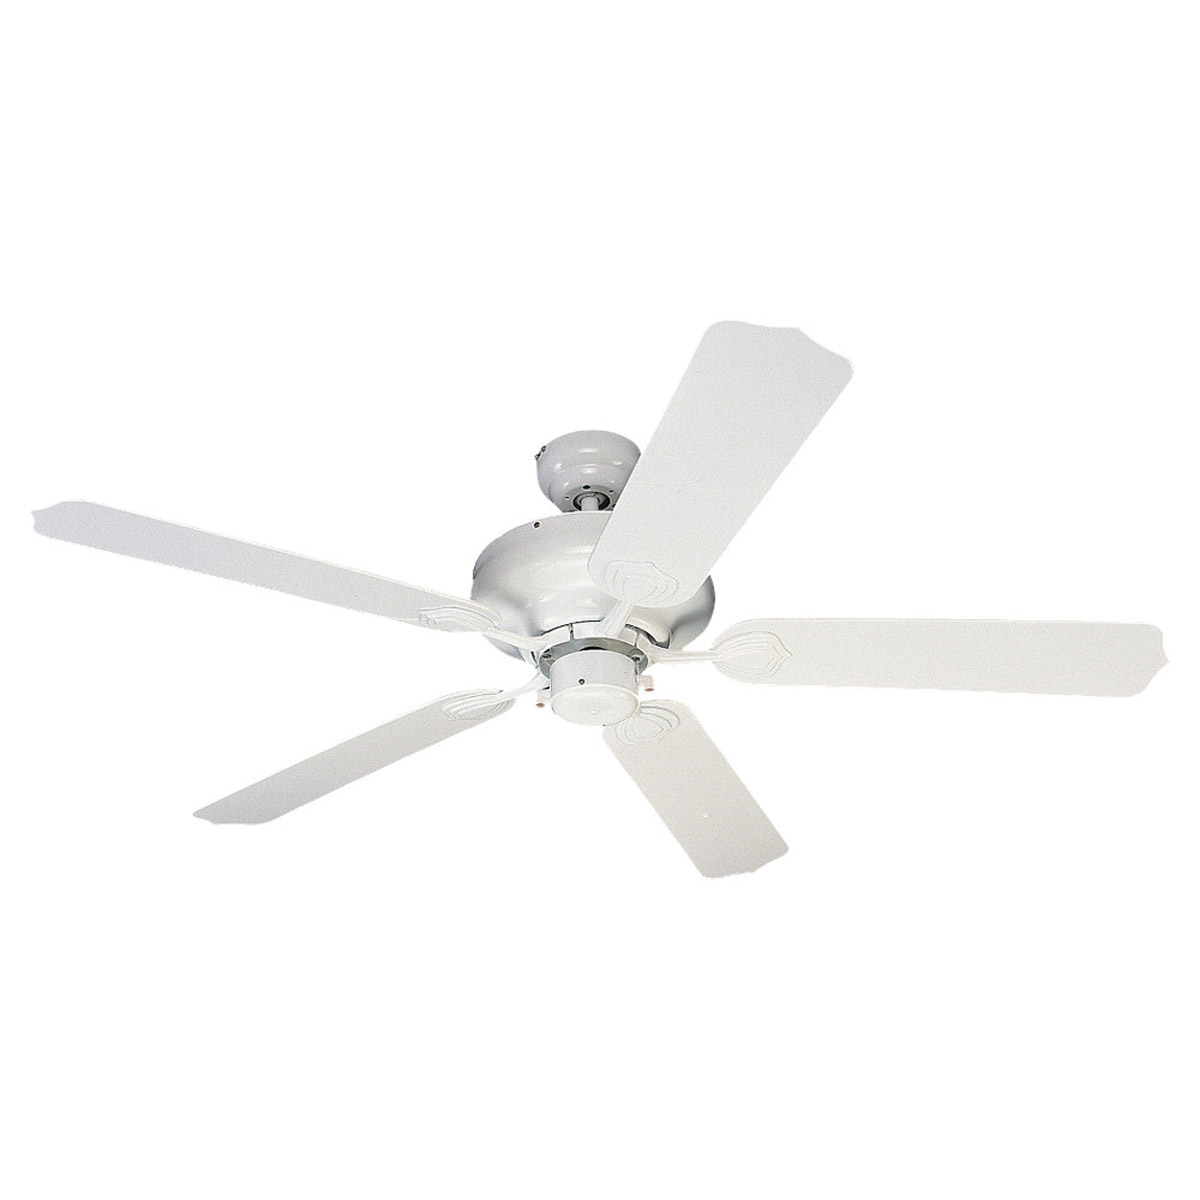 Sea Gull Lighting Long Beach 52in Outdoor Ceiling Fan in White 1540-15